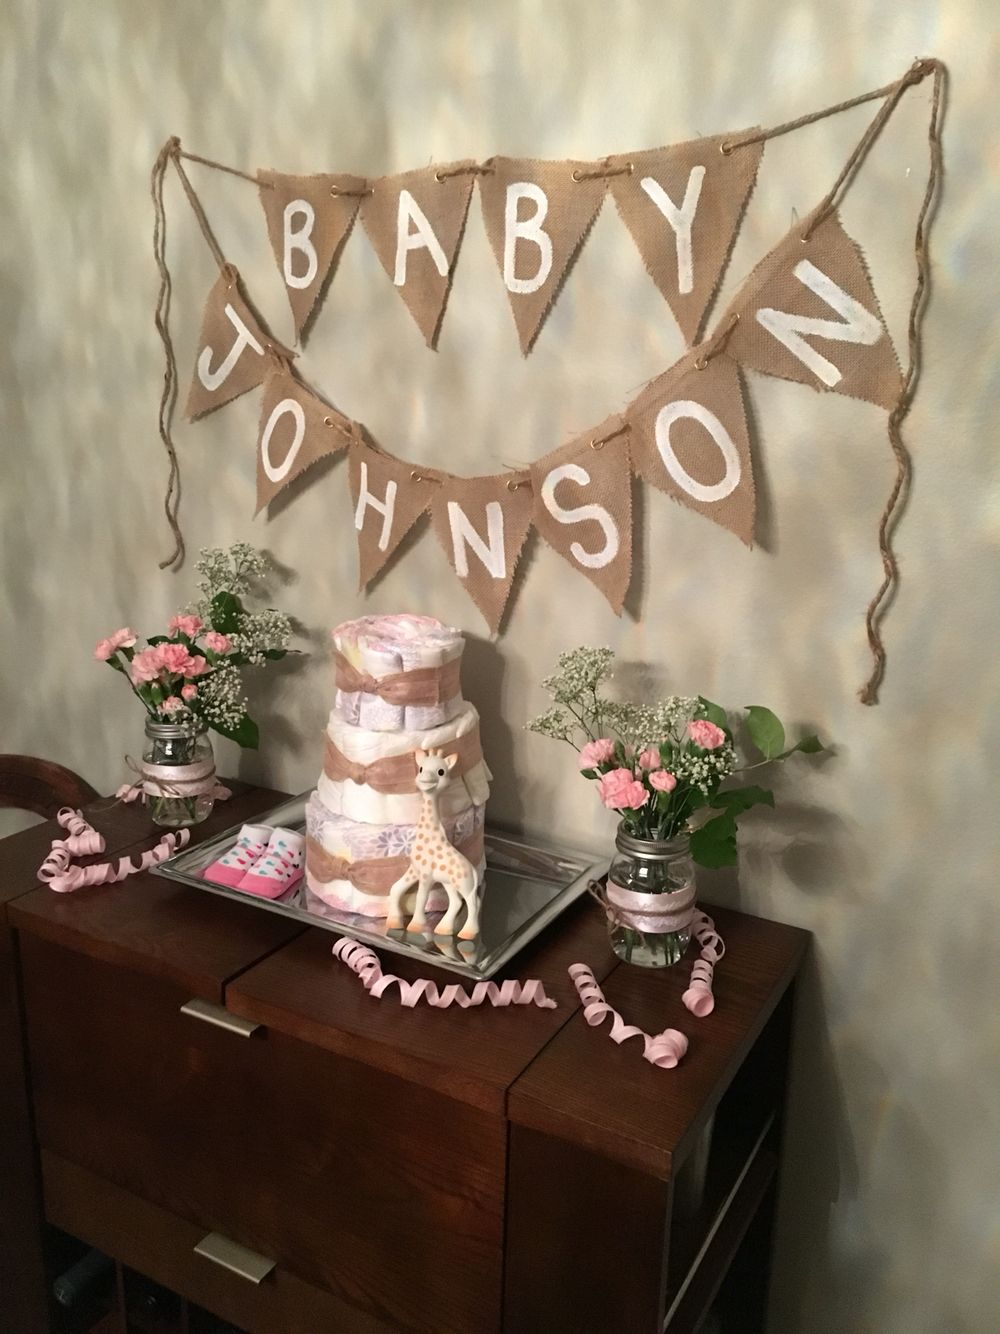 I Like The Banner In This Picture, I Can Make It Out Of Burlap And We Can  Write On It (baby Lujan) Since We Havnt Decided On Name.